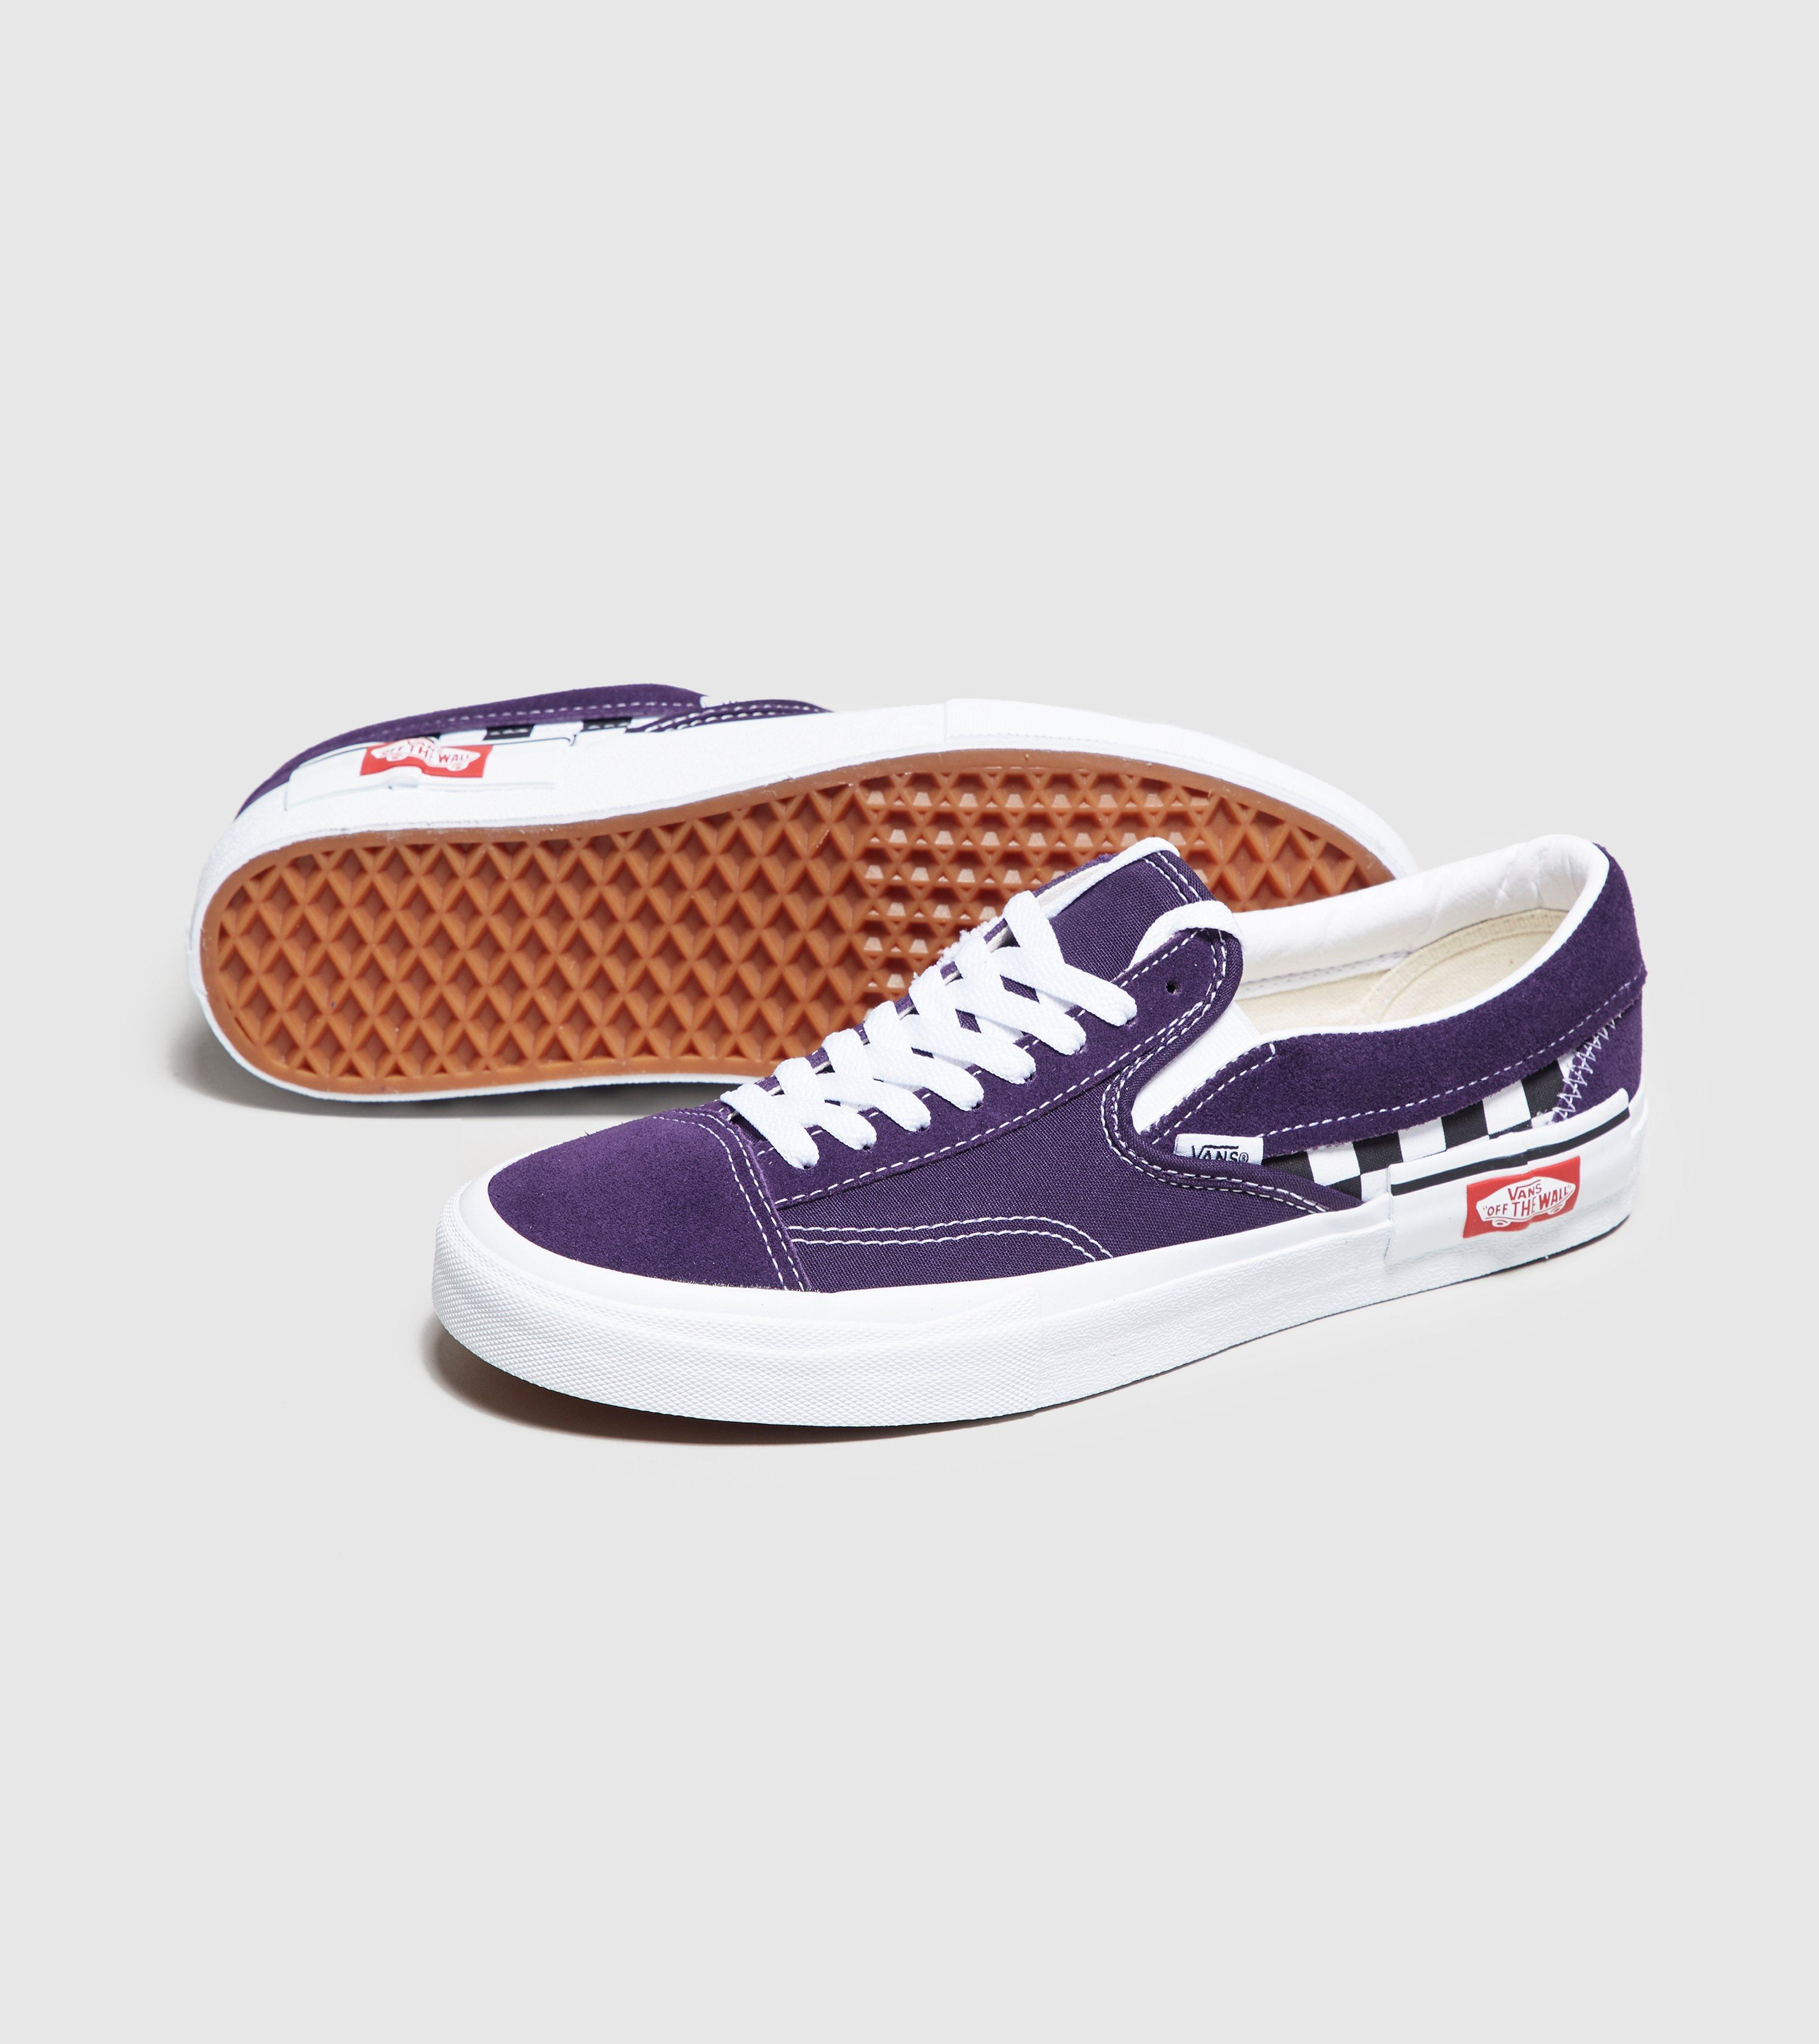 Lyst - Vans Slip-on Cap Checkerboard In Mysterioso in Purple for Men ... 7651f5ff6